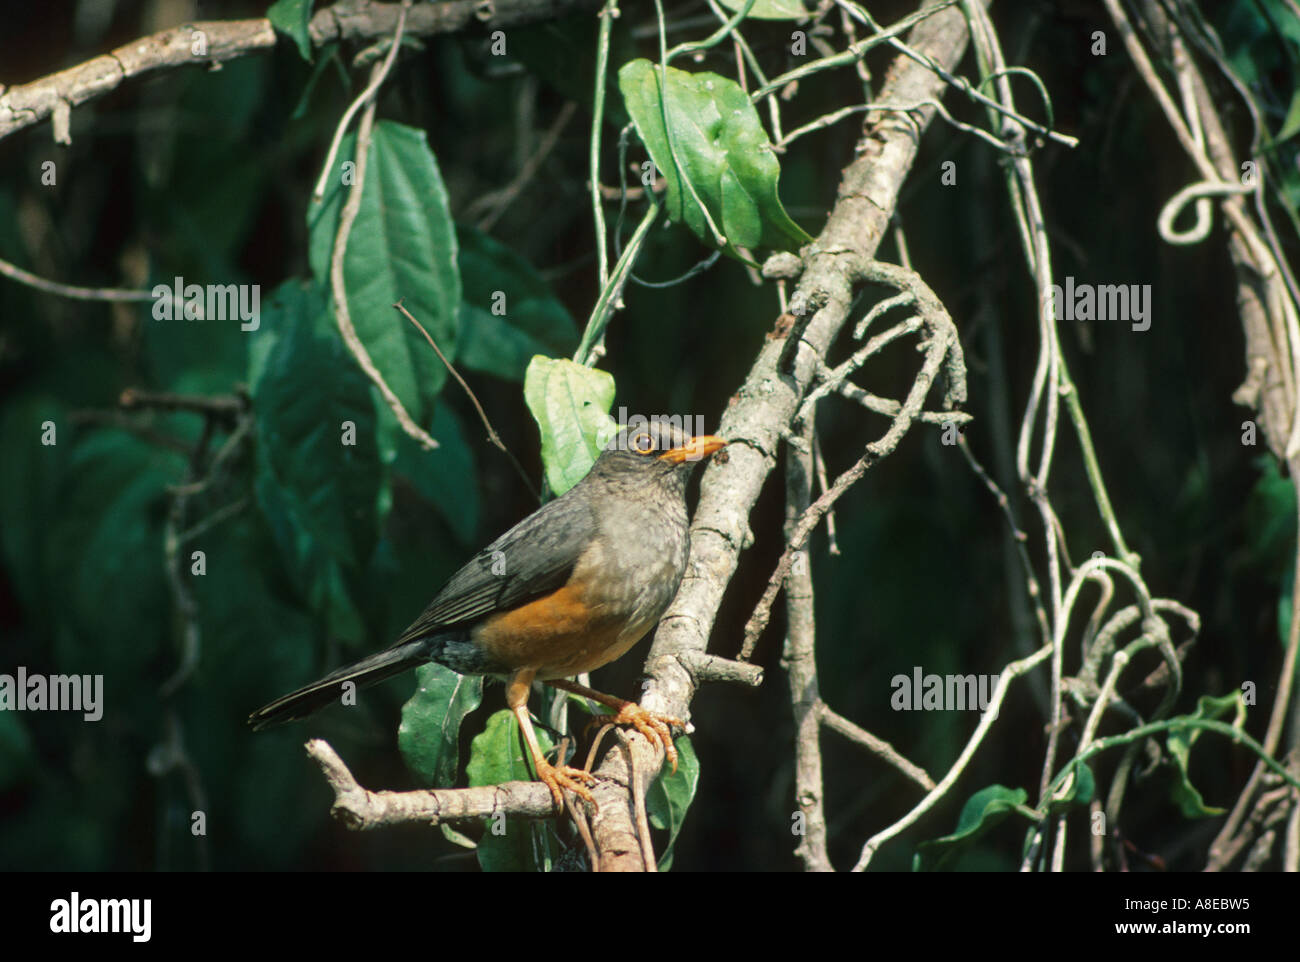 Olive Thrush Turdus olivaceus Perched on branch Stock Photo